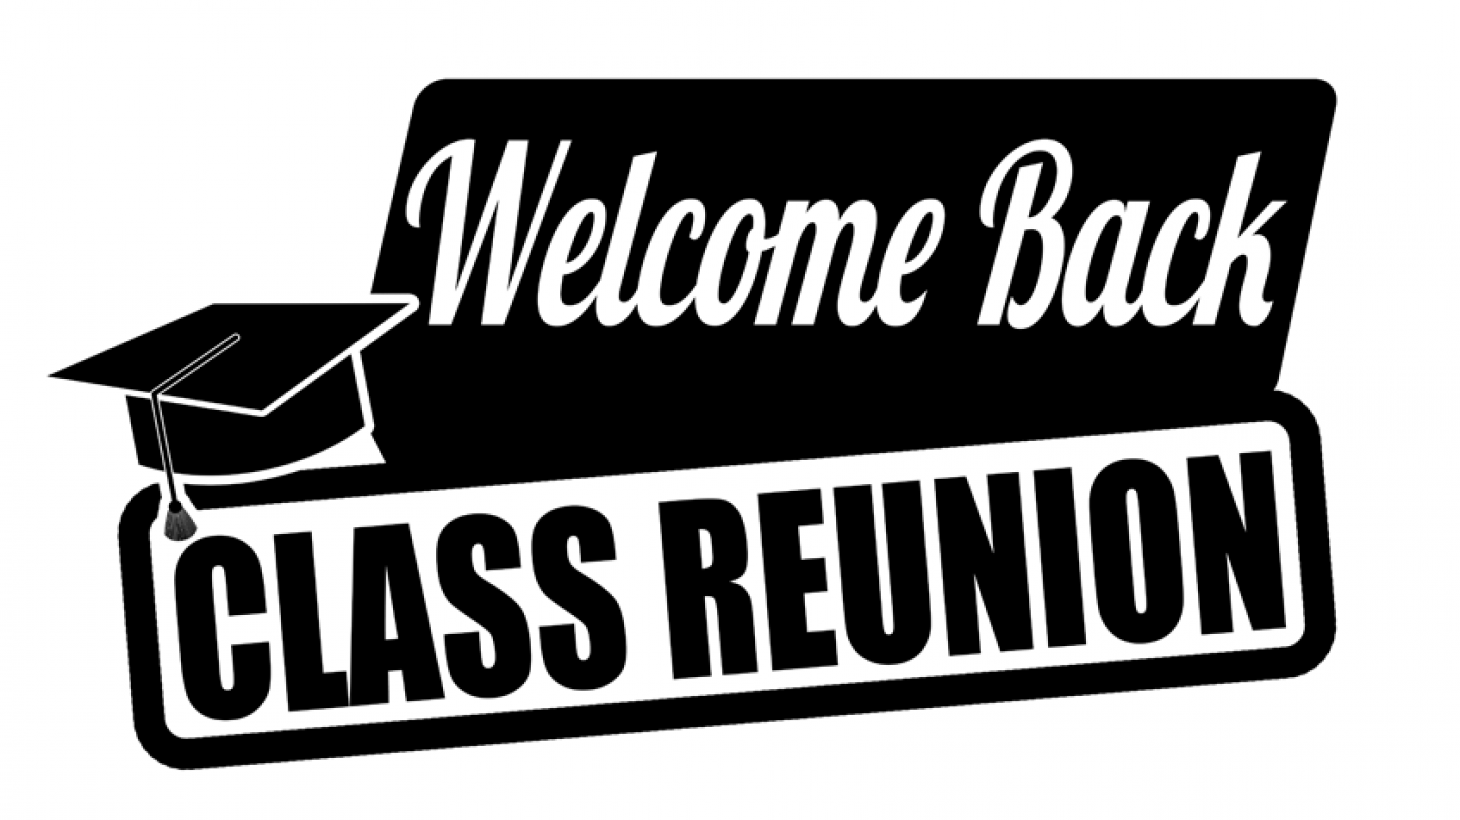 Build a School Reunion Golf Tournament You Can Be Proud Of ...